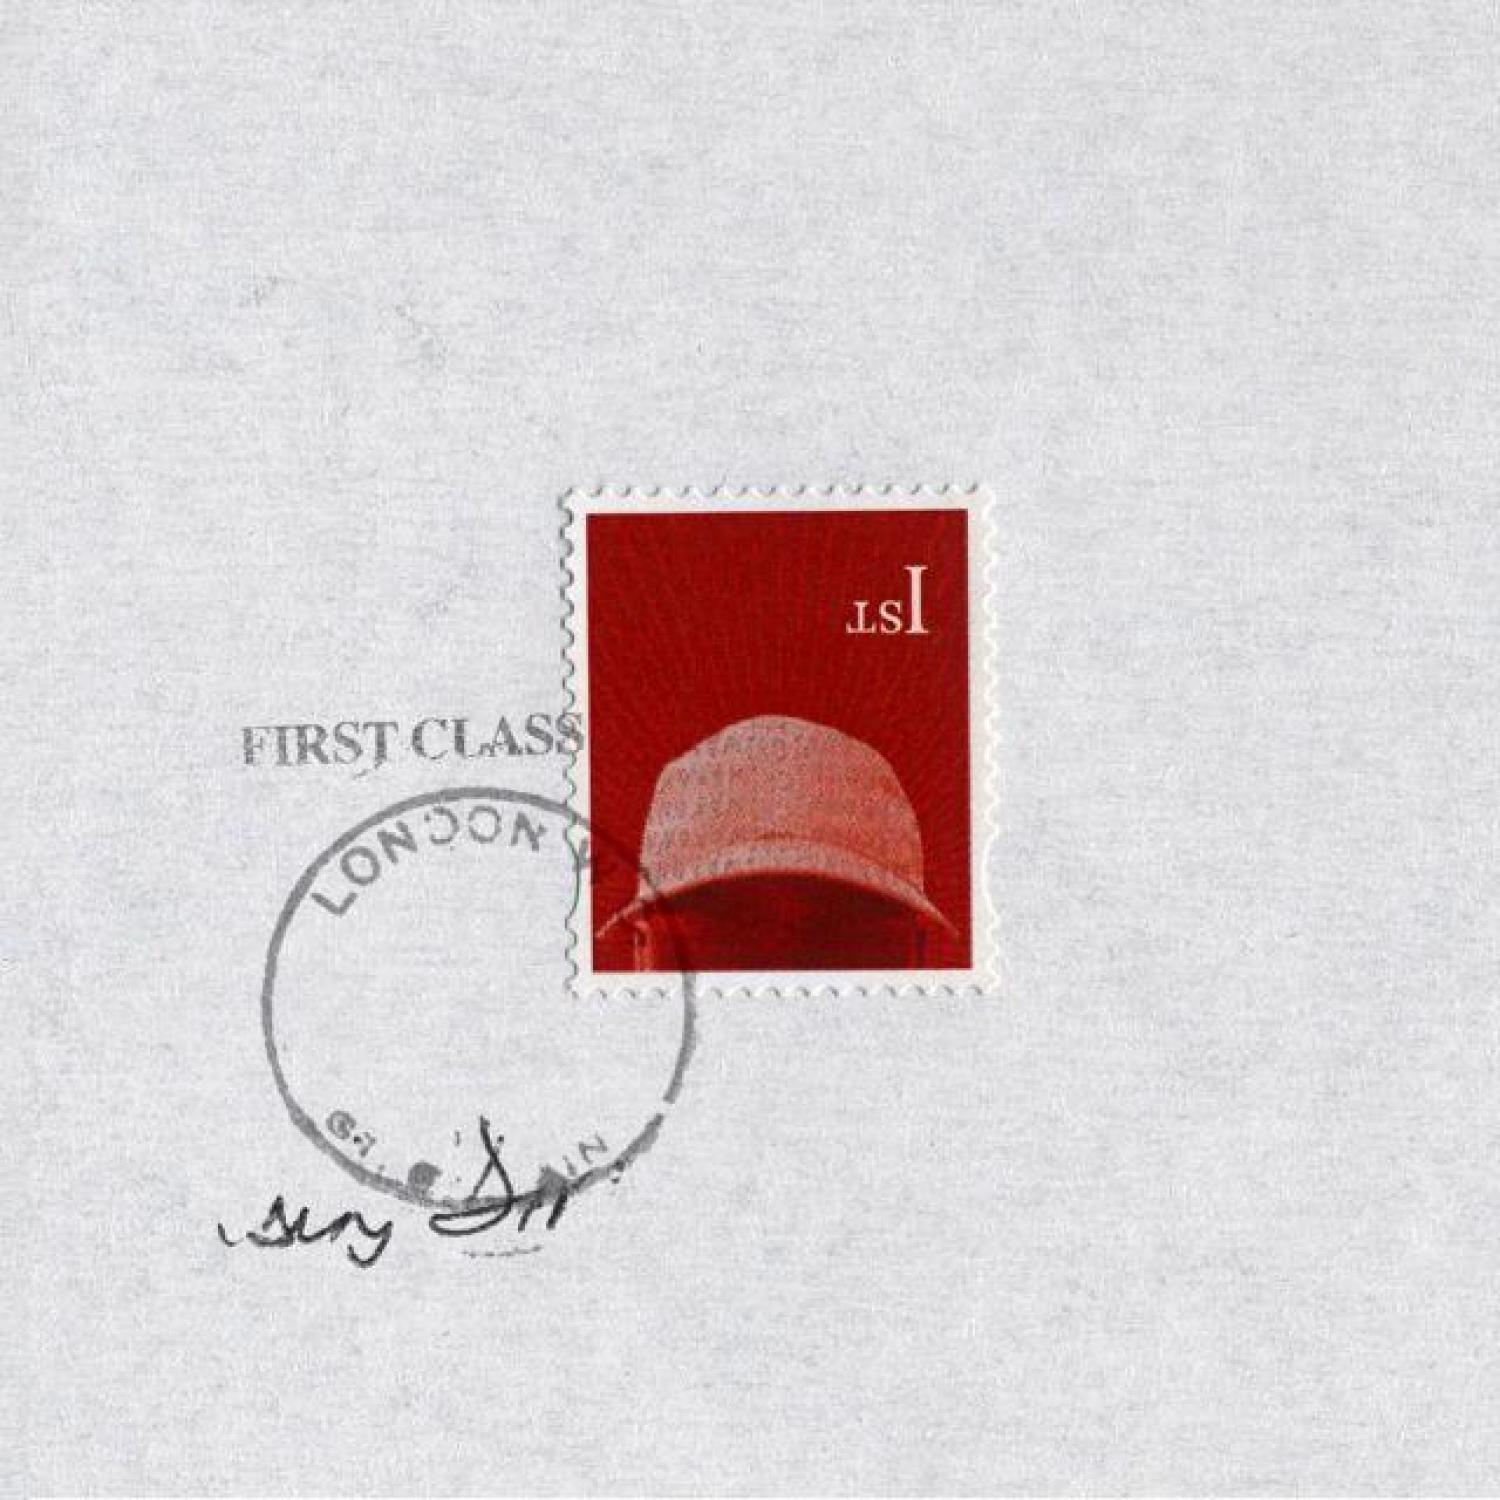 Skepta samples Queens of the Stone Age on new single